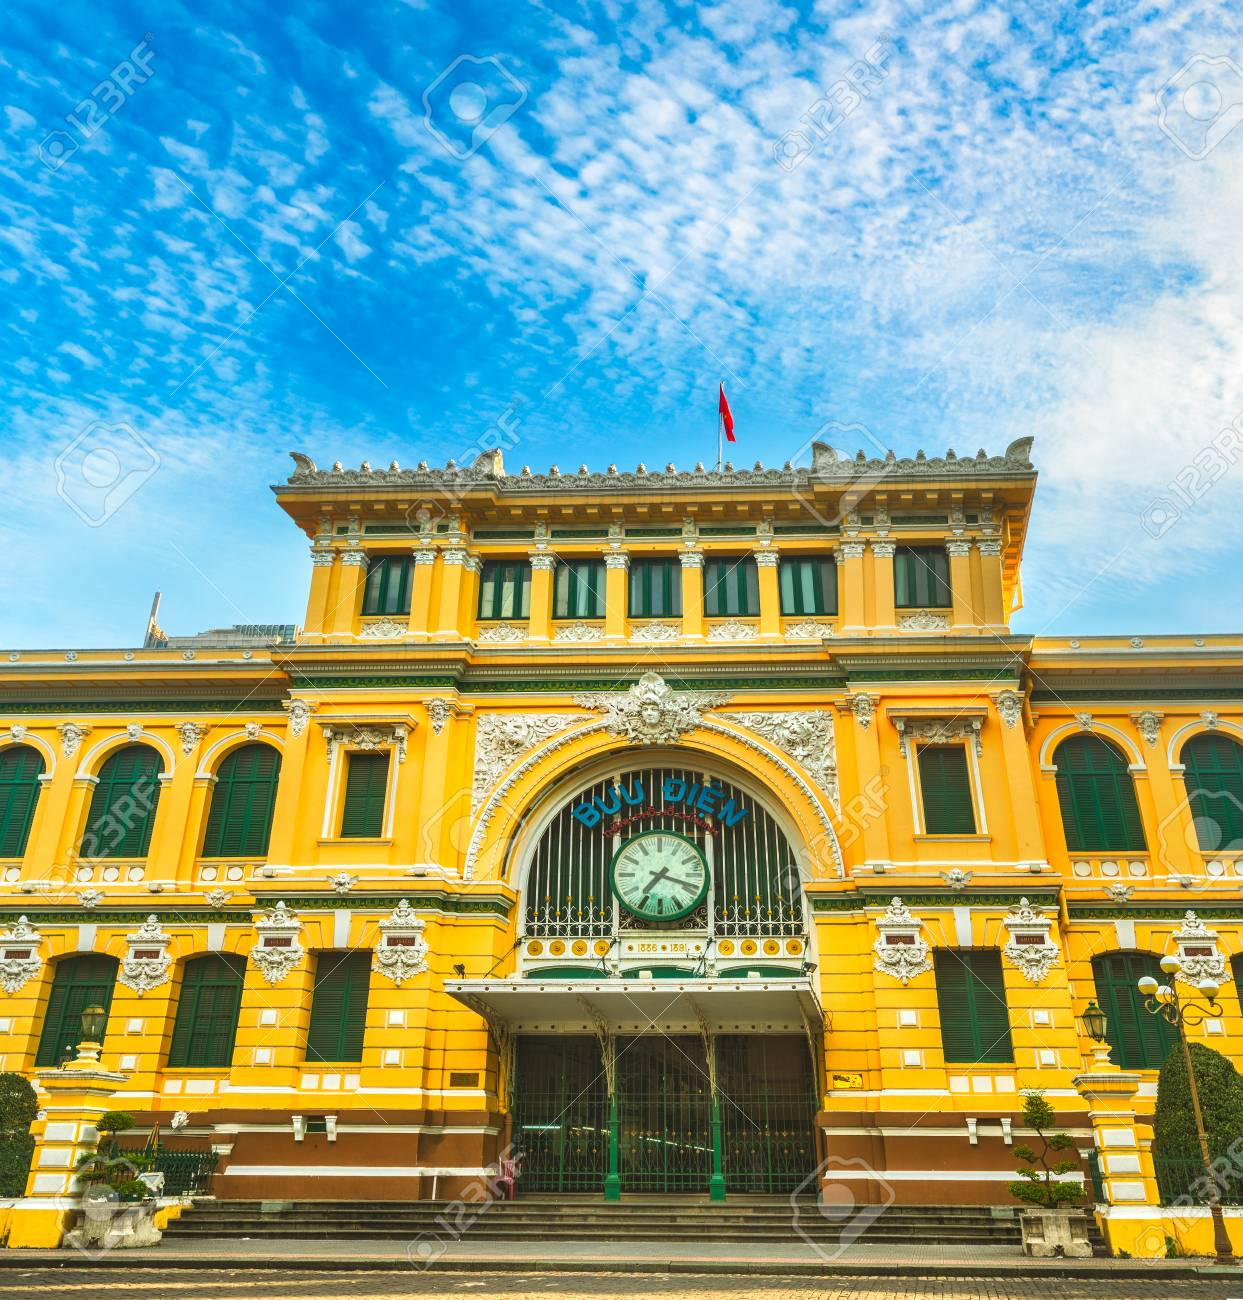 Saigon Central Post Office in the downtown Ho Chi Minh City,